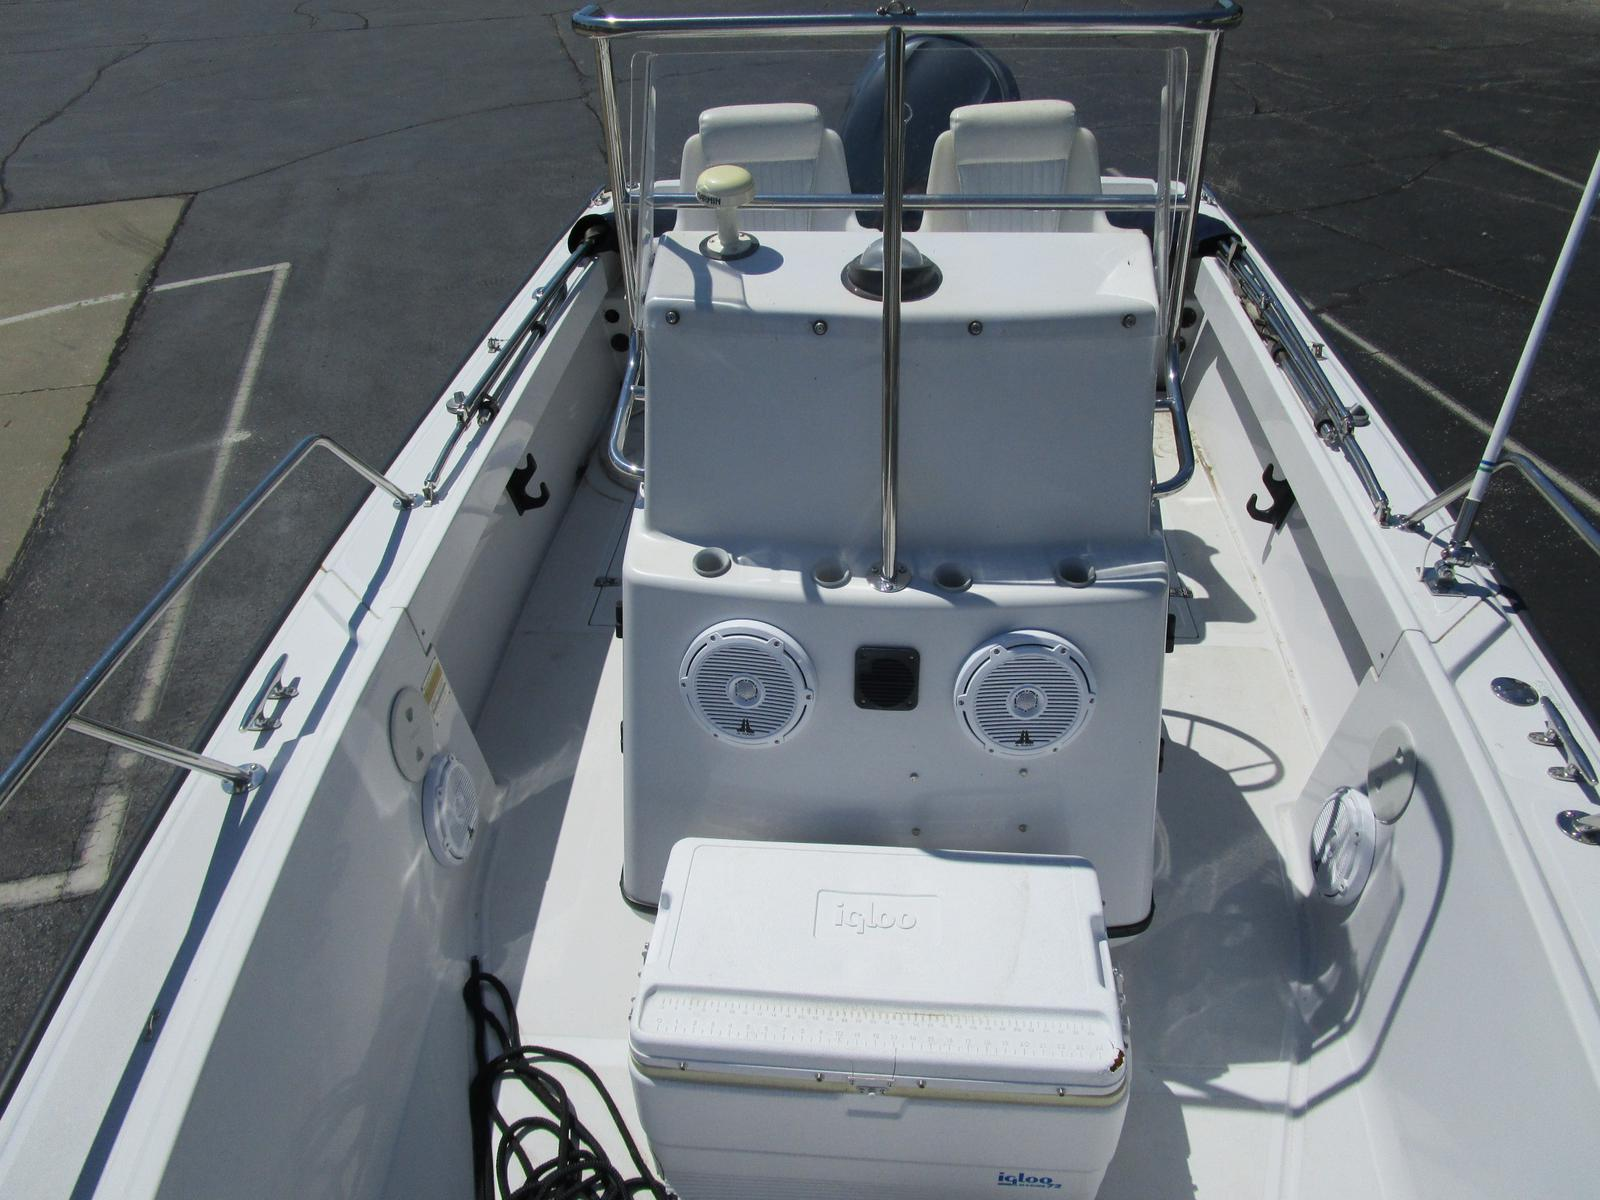 1996 Boston Whaler boat for sale, model of the boat is 190 Outrage & Image # 5 of 9